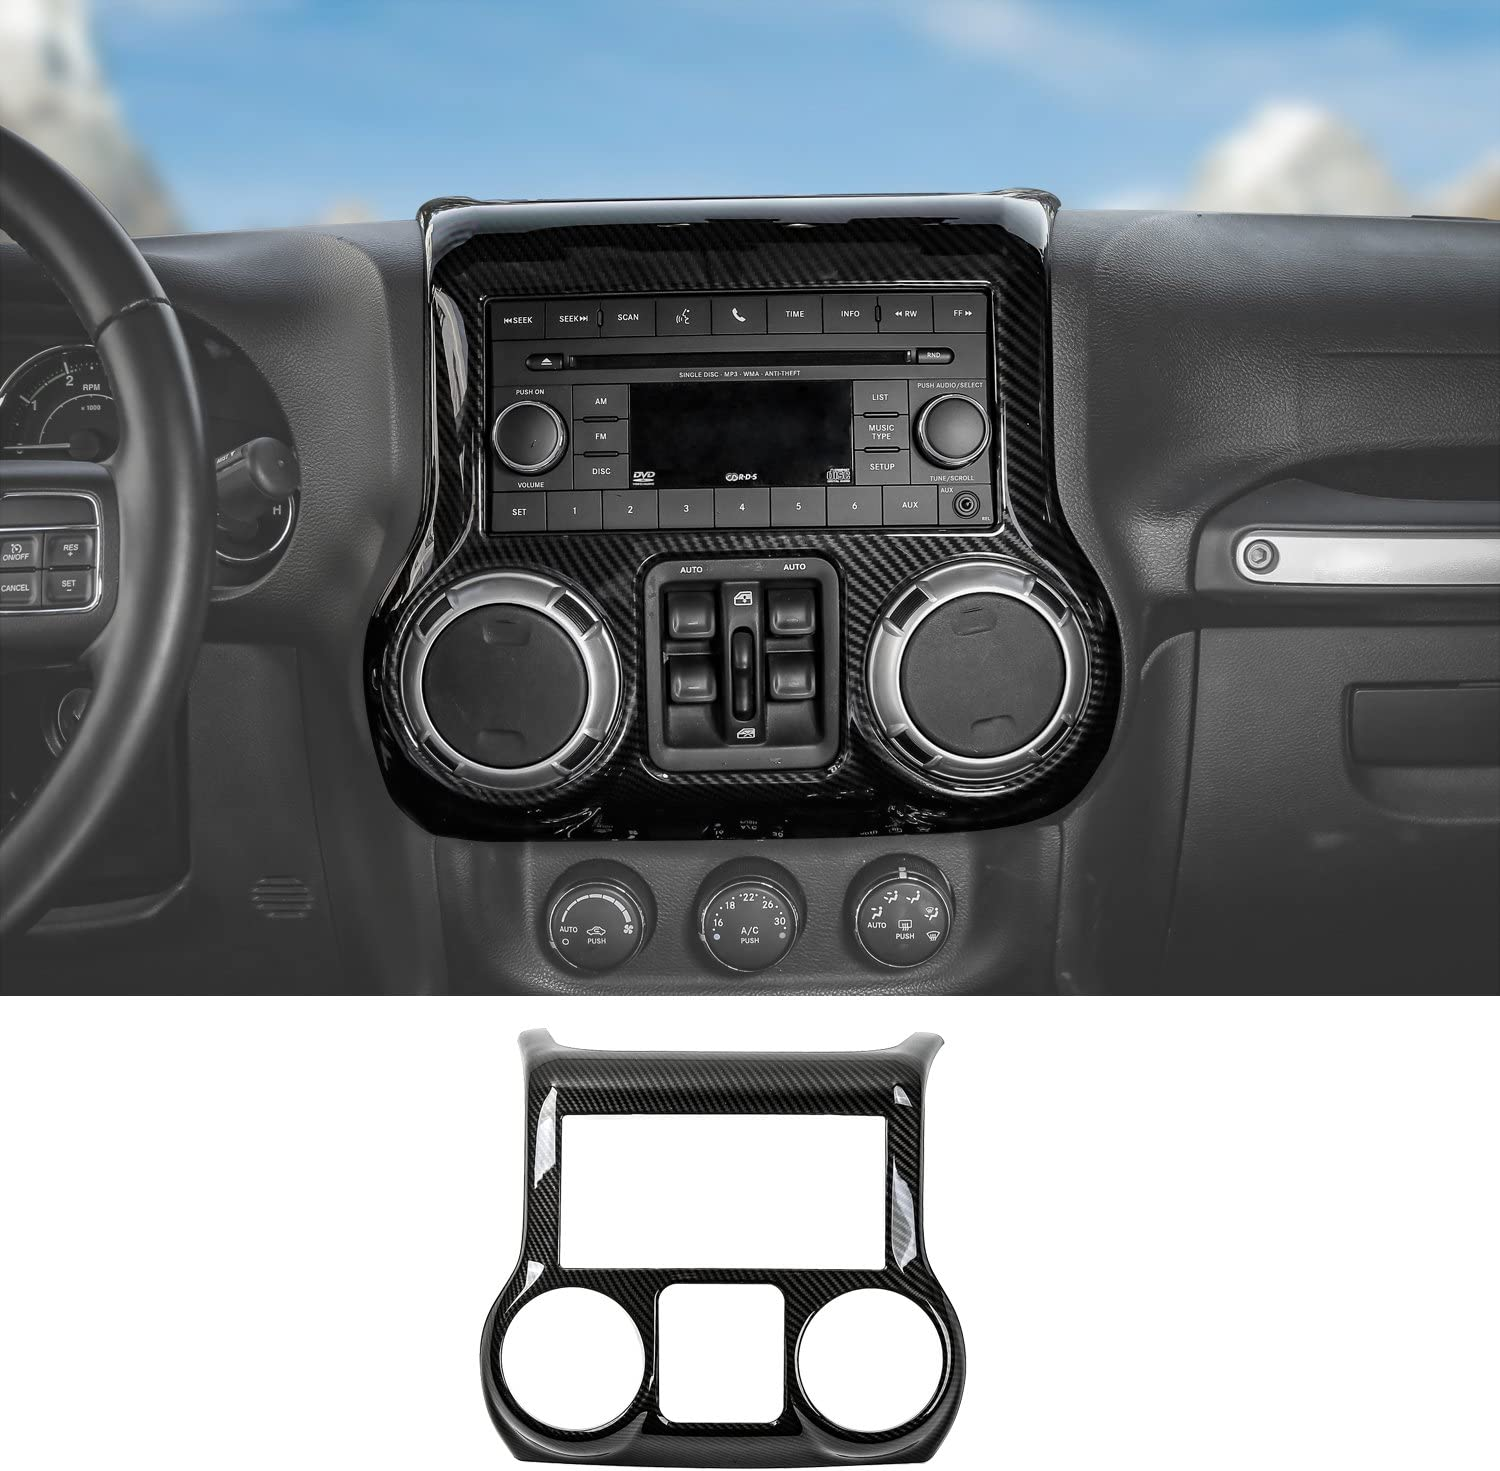 Silver RT-TCZ Car Interior Center Console Dashboard Panel /& Air Conditioning Switch Panel Frame Cover Trims for Jeep Wrangler 2011-2017